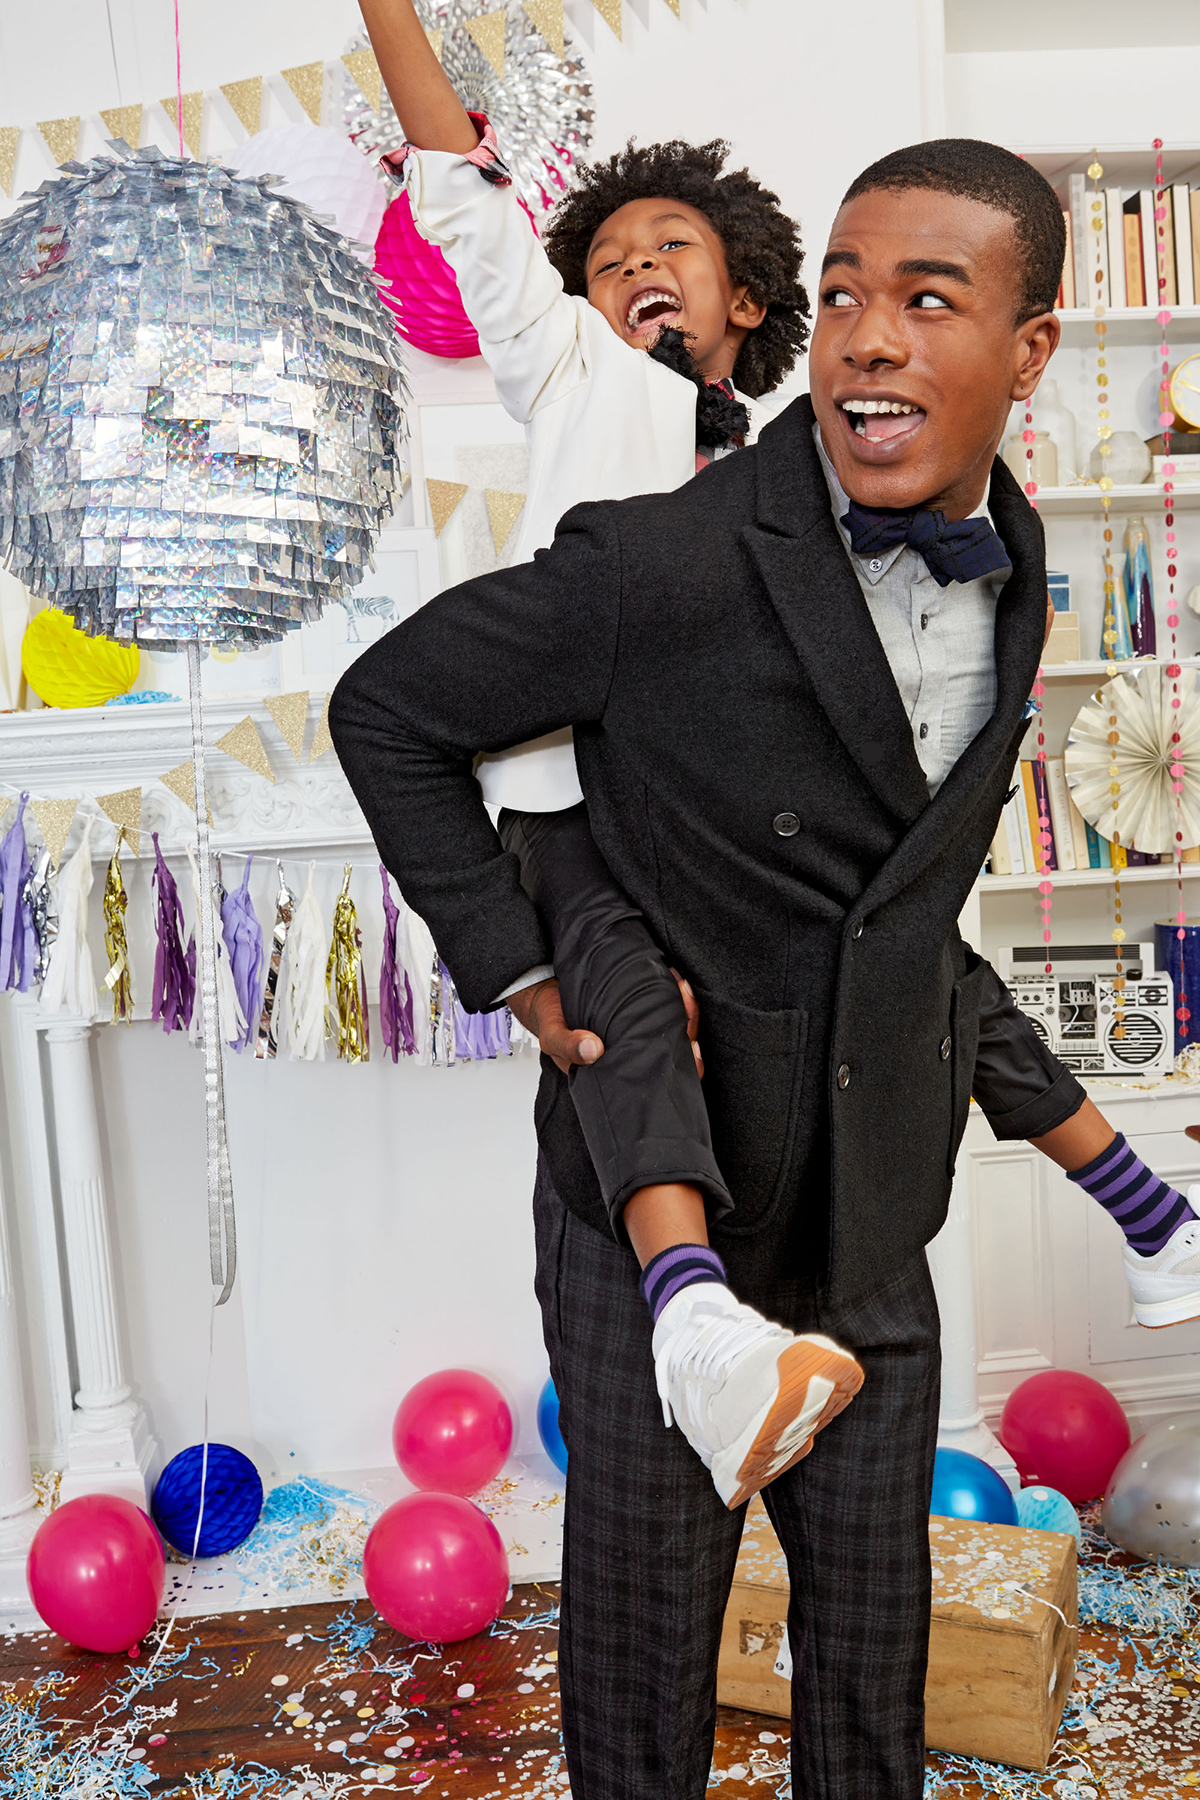 kid riding piggyback on dad with balloons and disco ball decorations